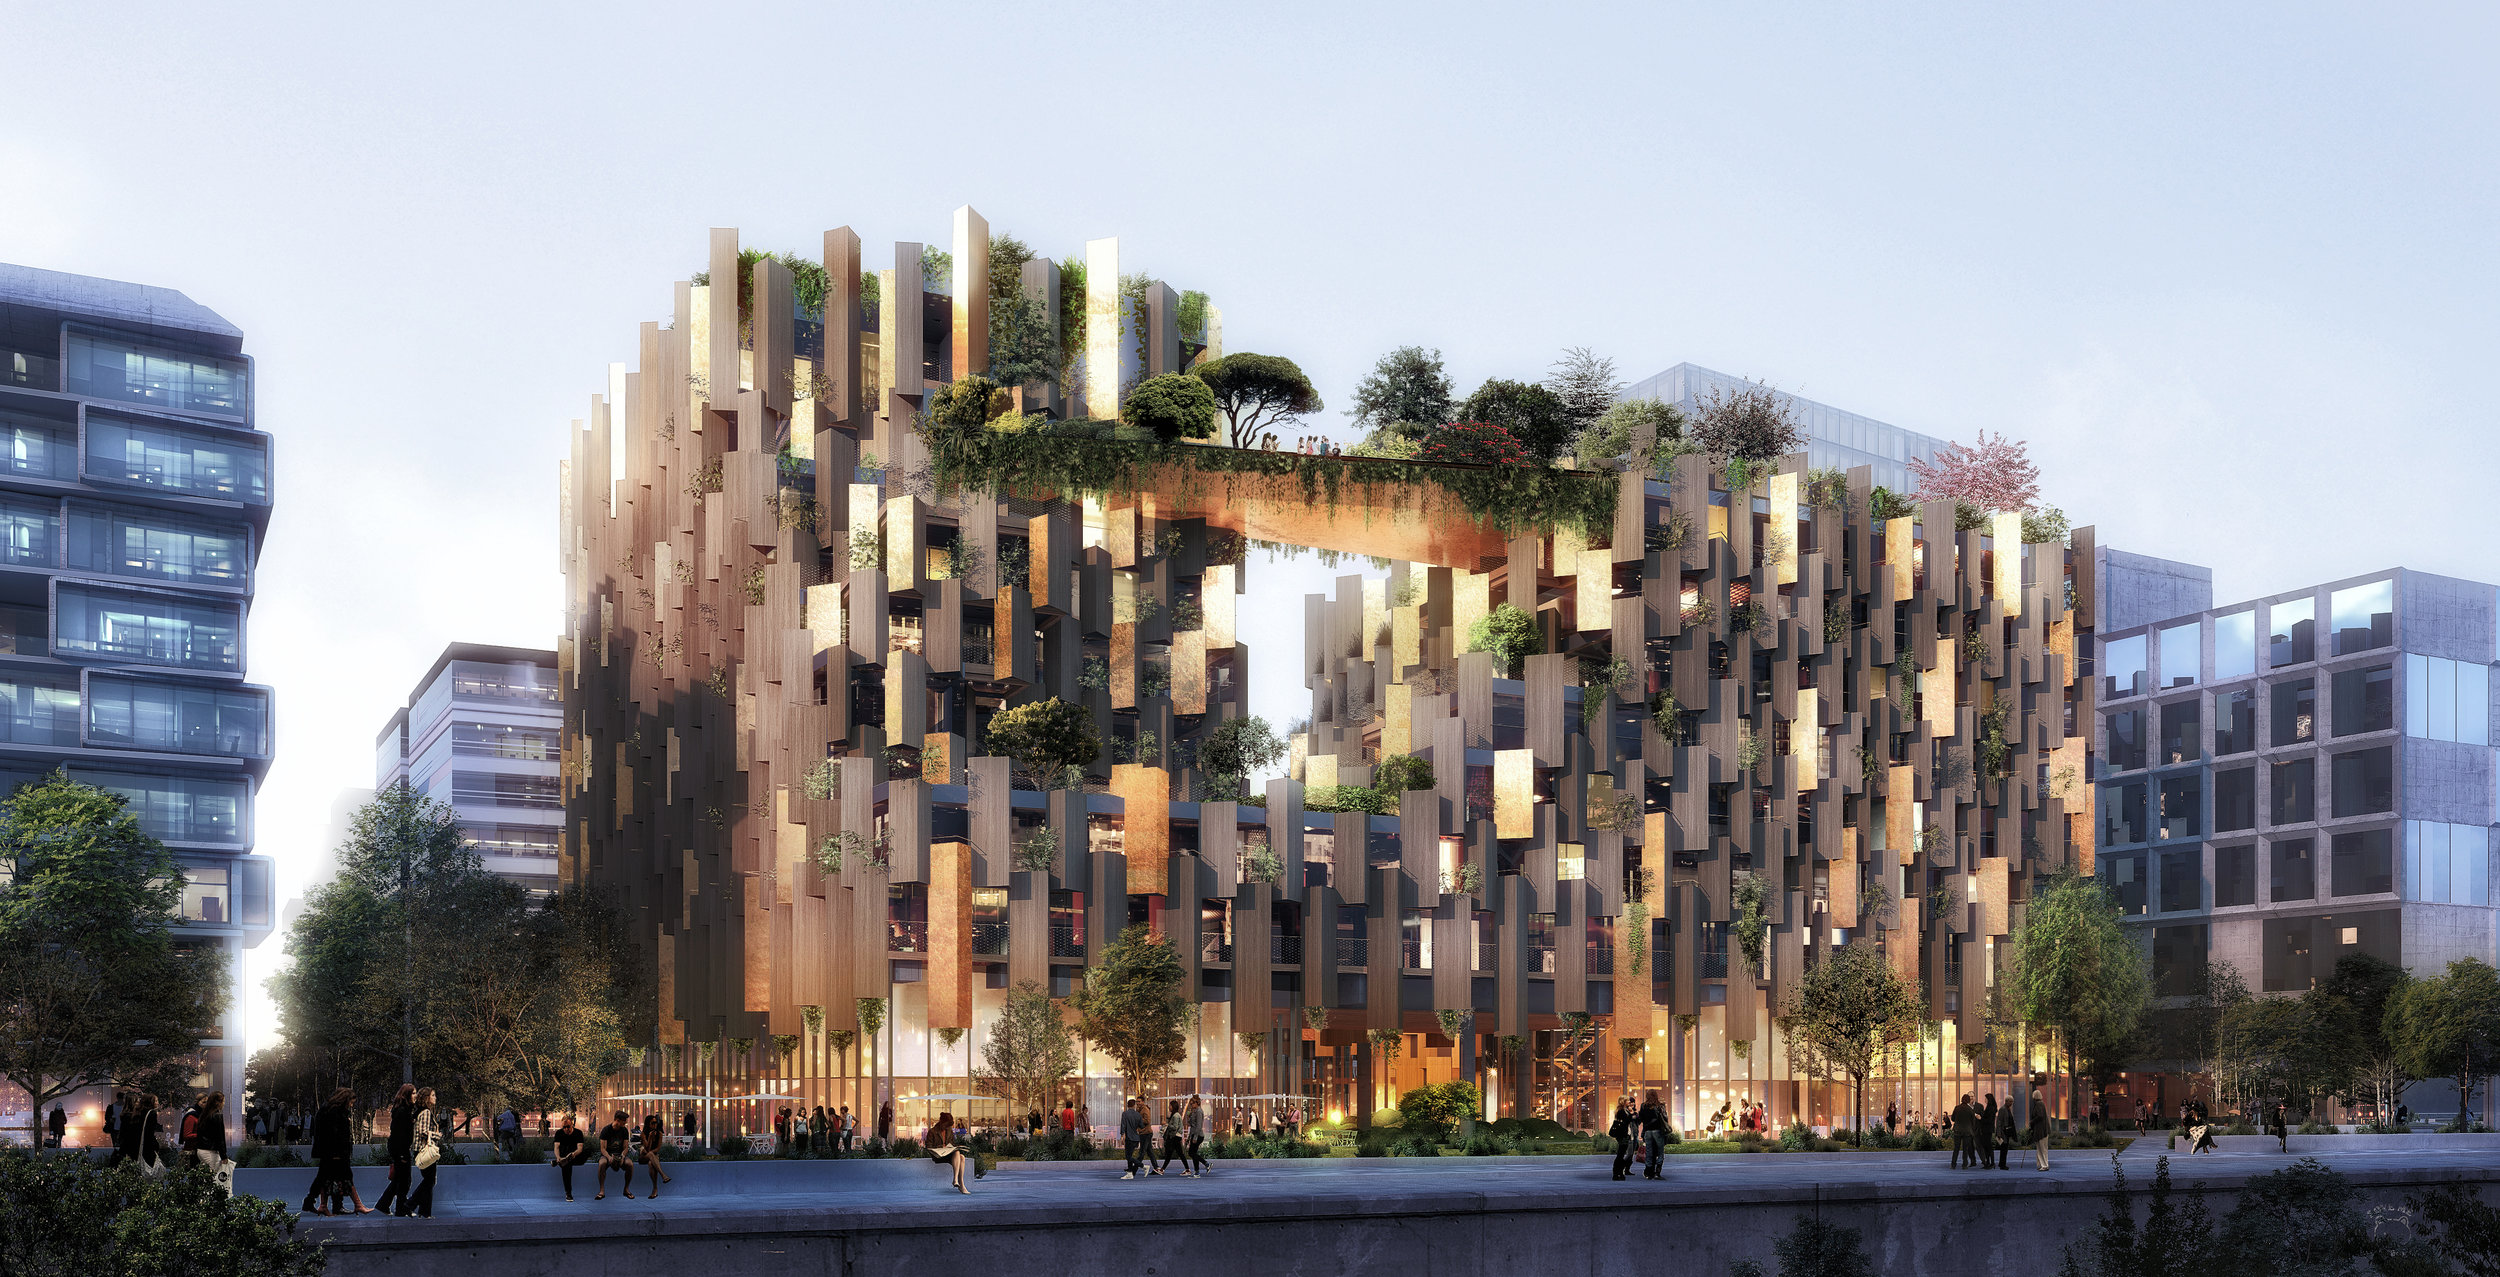 01_@LUXIGON_View from Planted Promenade.jpg